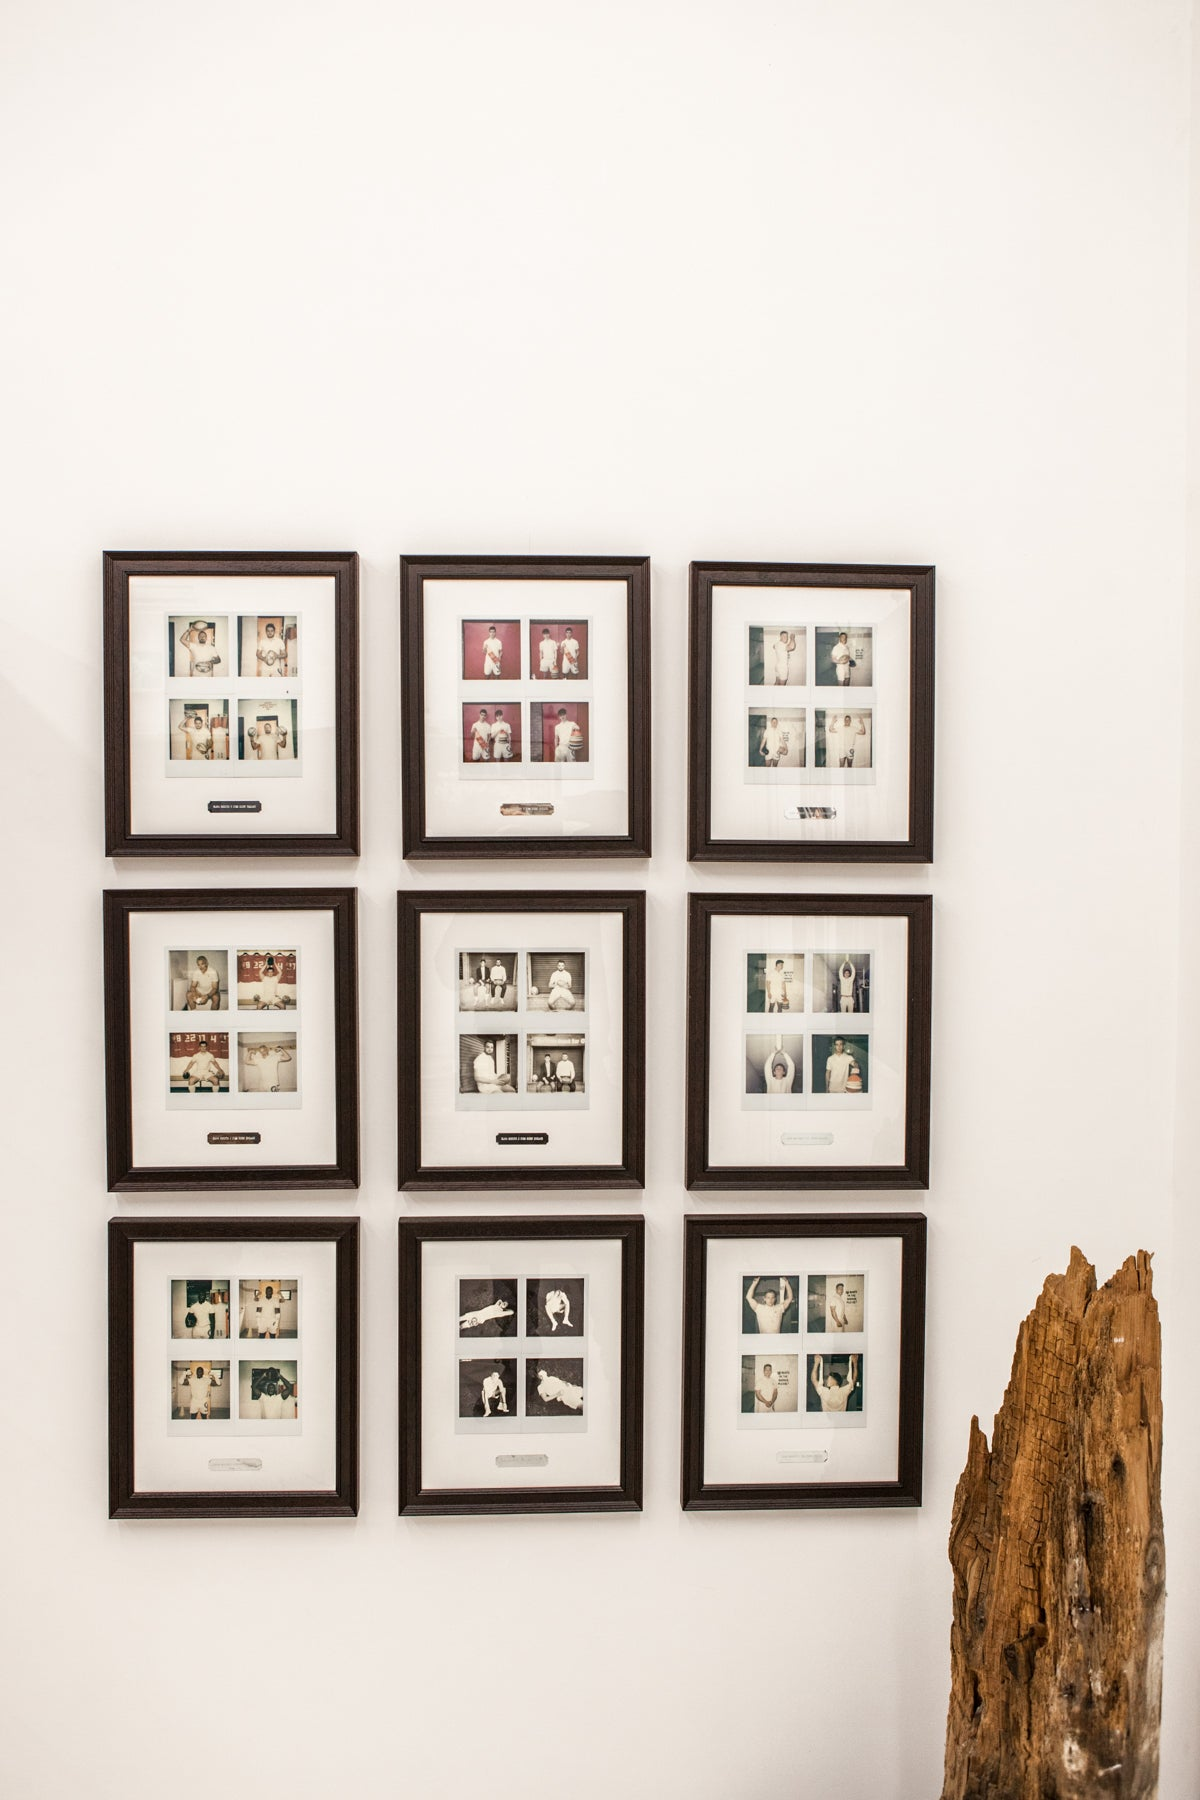 DAN - 320mm × 400mm - Framed 4 x Original Polaroids